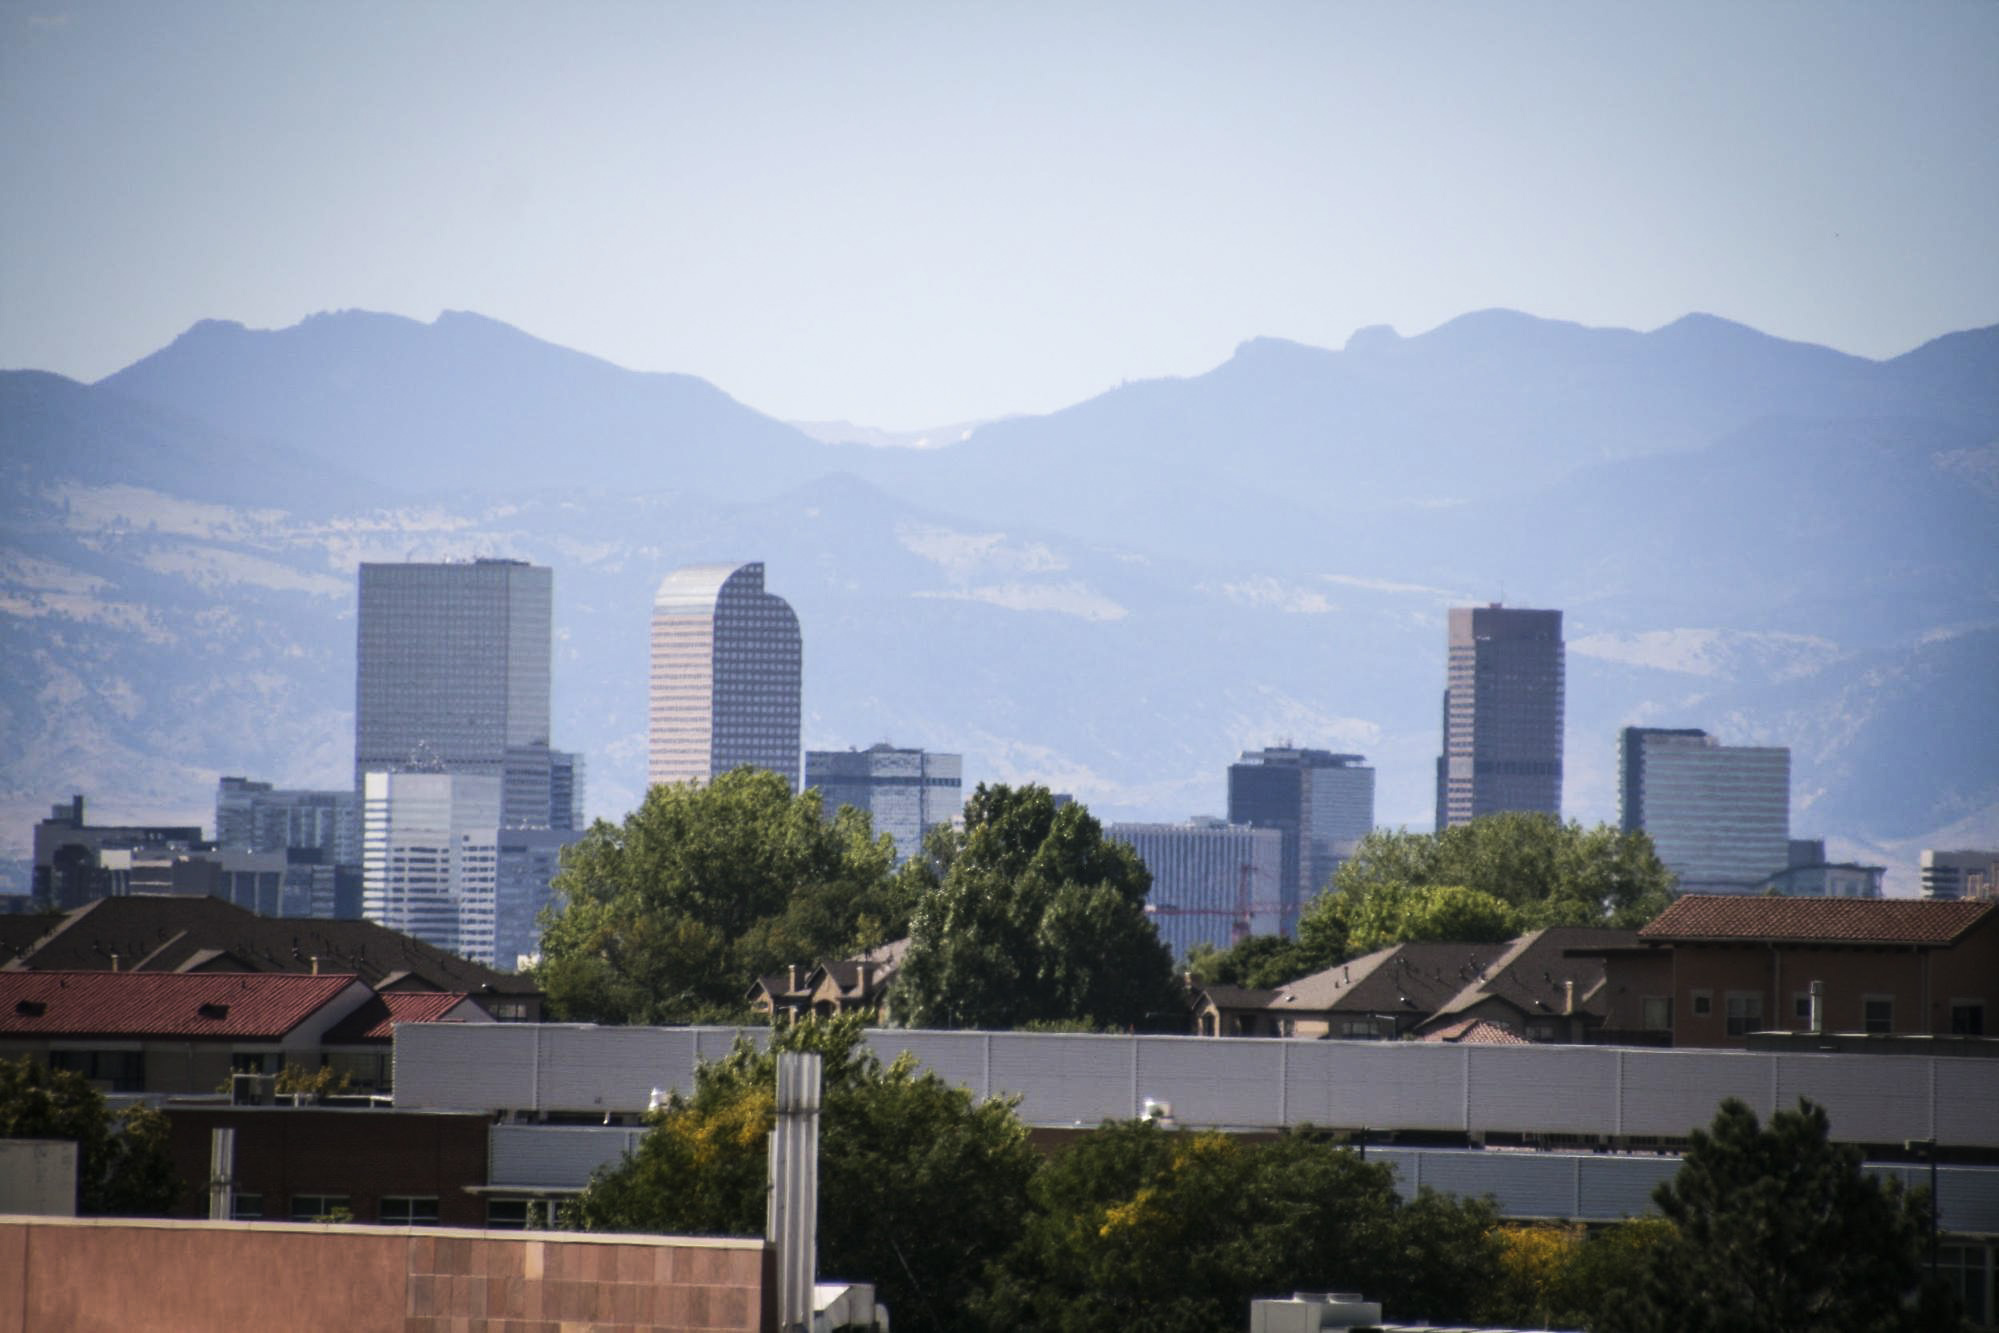 Photo: Colorado heat and health 2 | View of downtown Denver